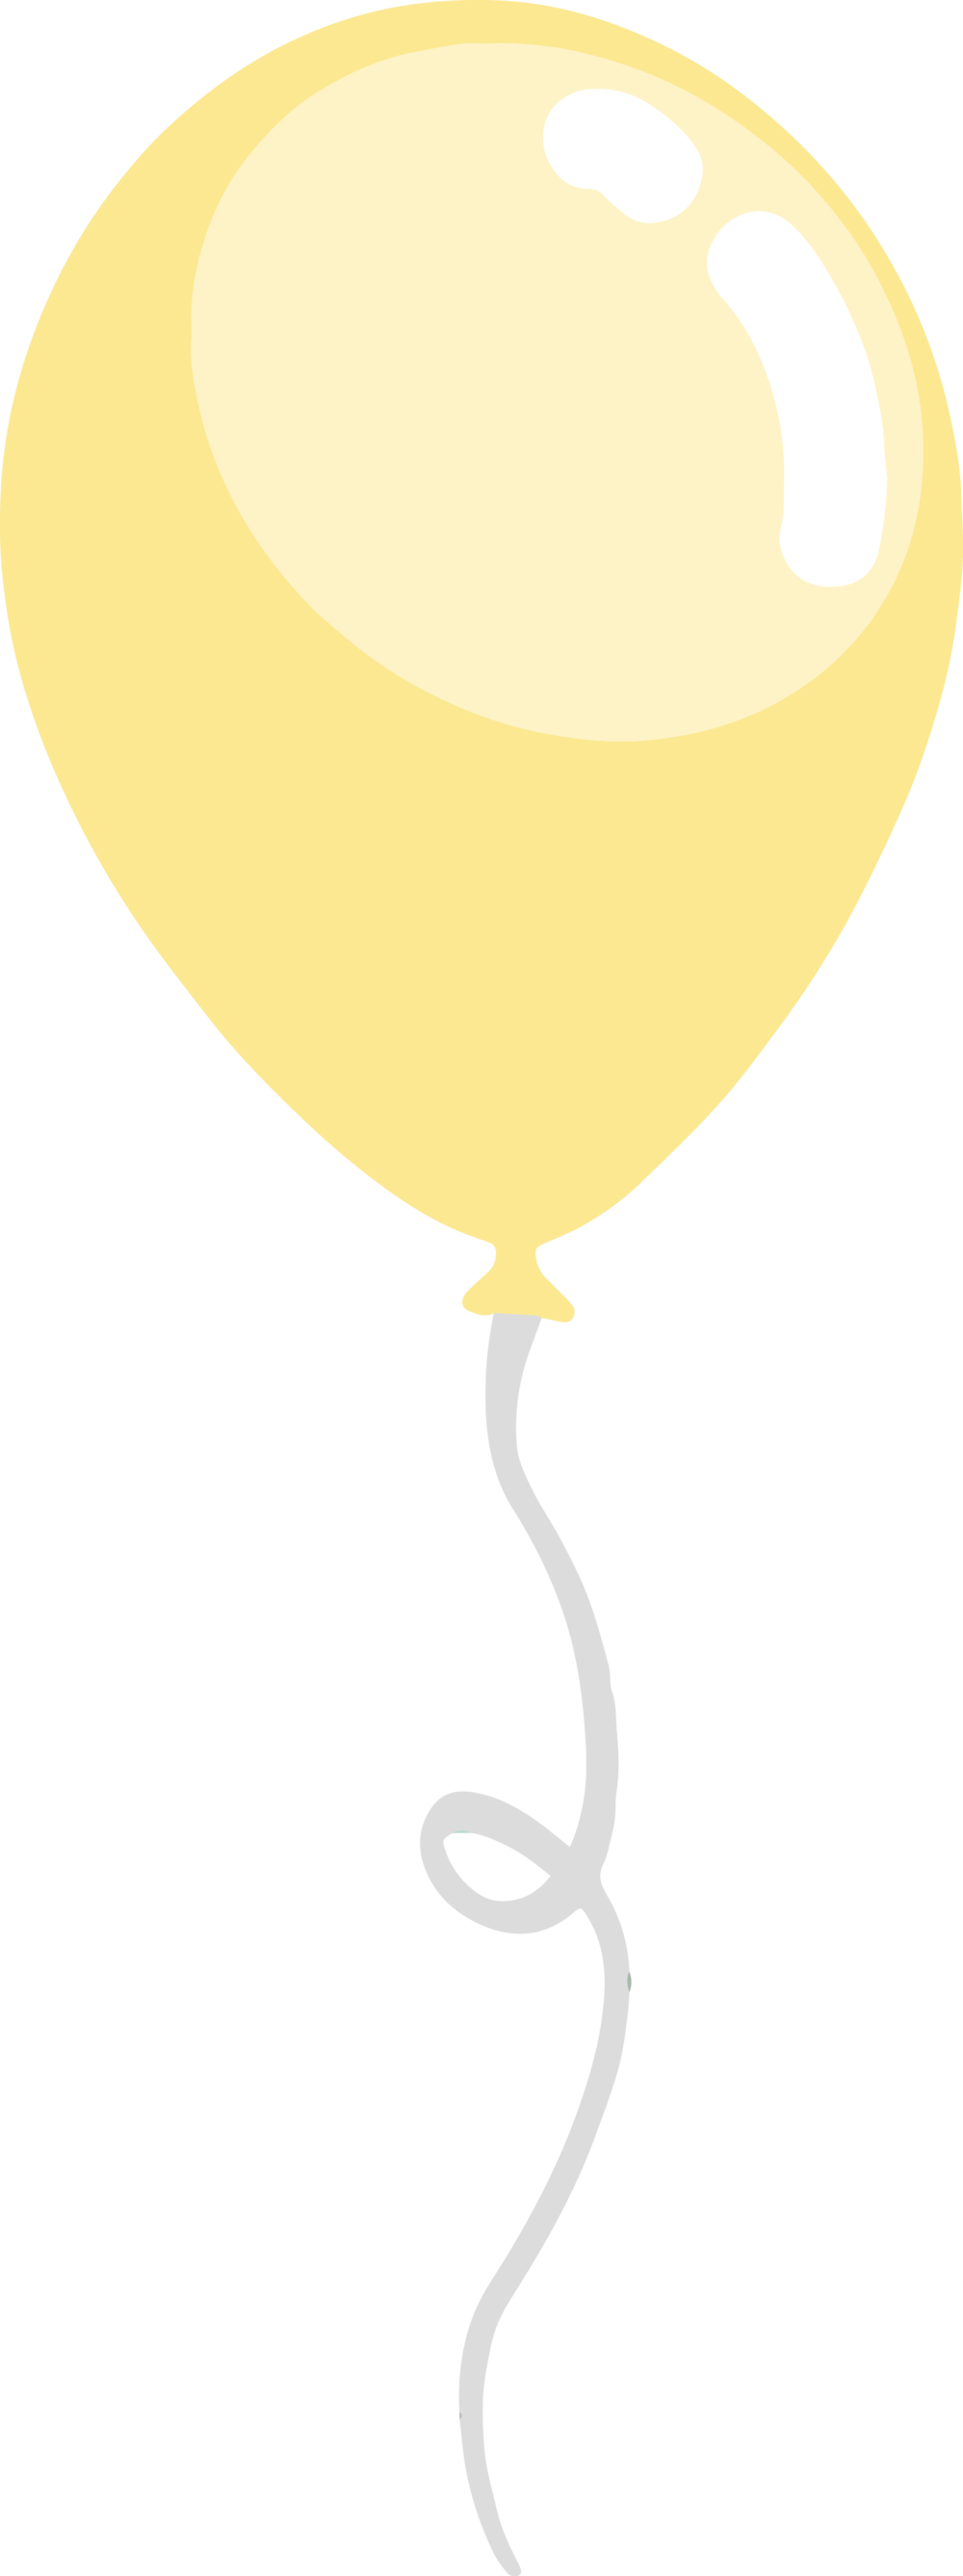 Illustration - Balloon (Yellow).png